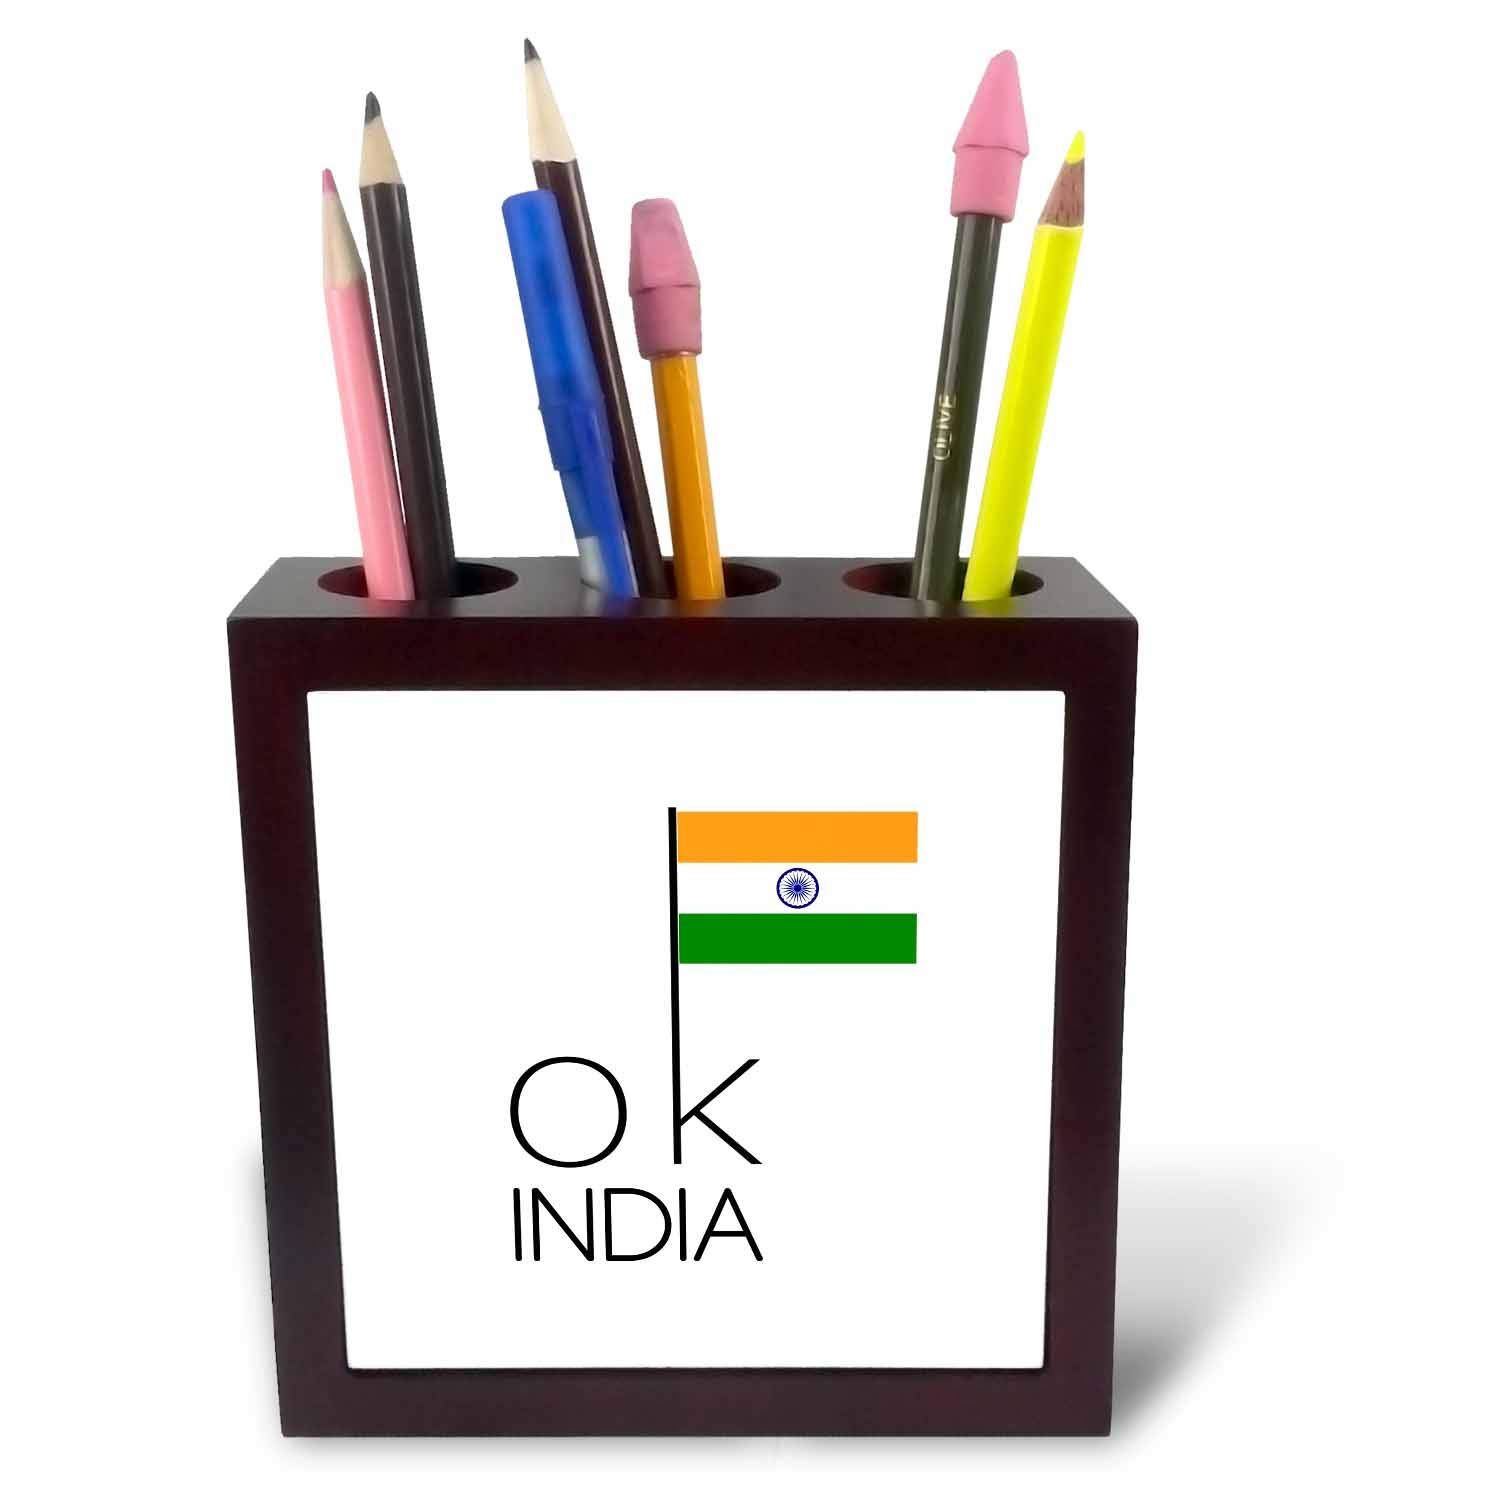 3dRose Alexis Design - OK Country - Stylish Text OK India and an Image of The Indian Flag - 5 inch Tile Pen Holder (ph_292335_1)